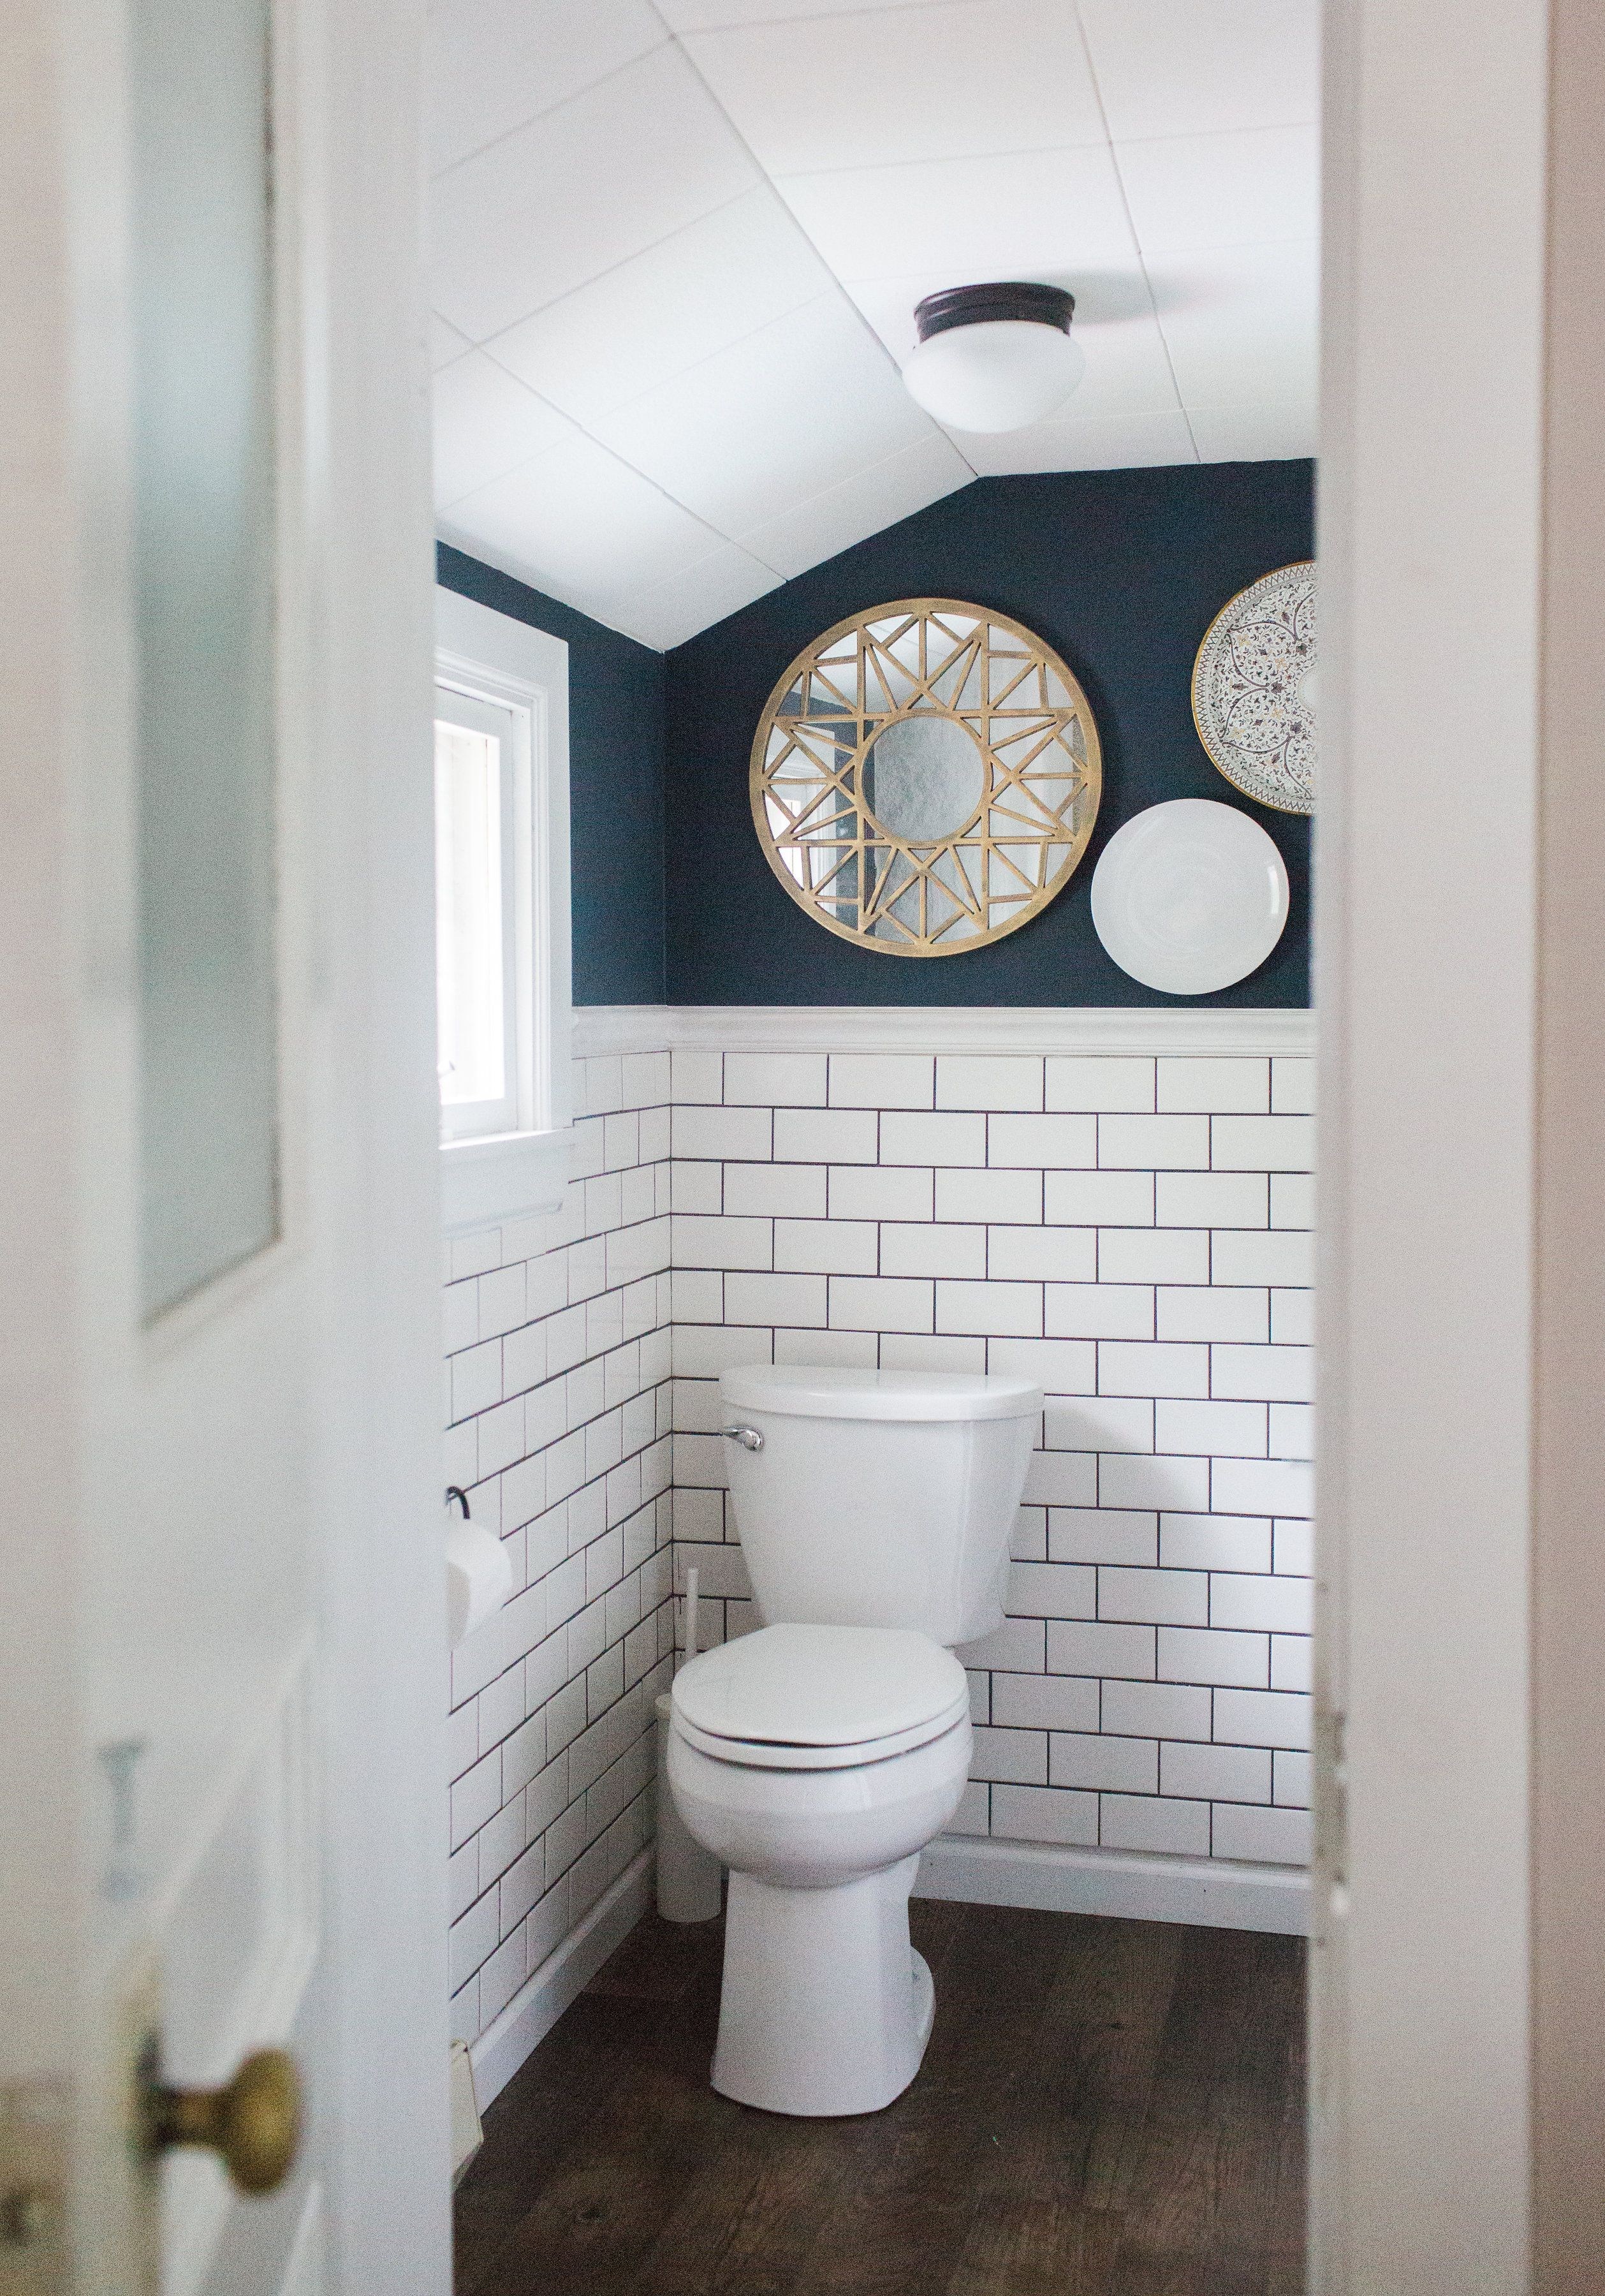 bathroom designs bathroom designs%0A such an amazing small bathroom design and makeover  Love the white subway  tile and navy